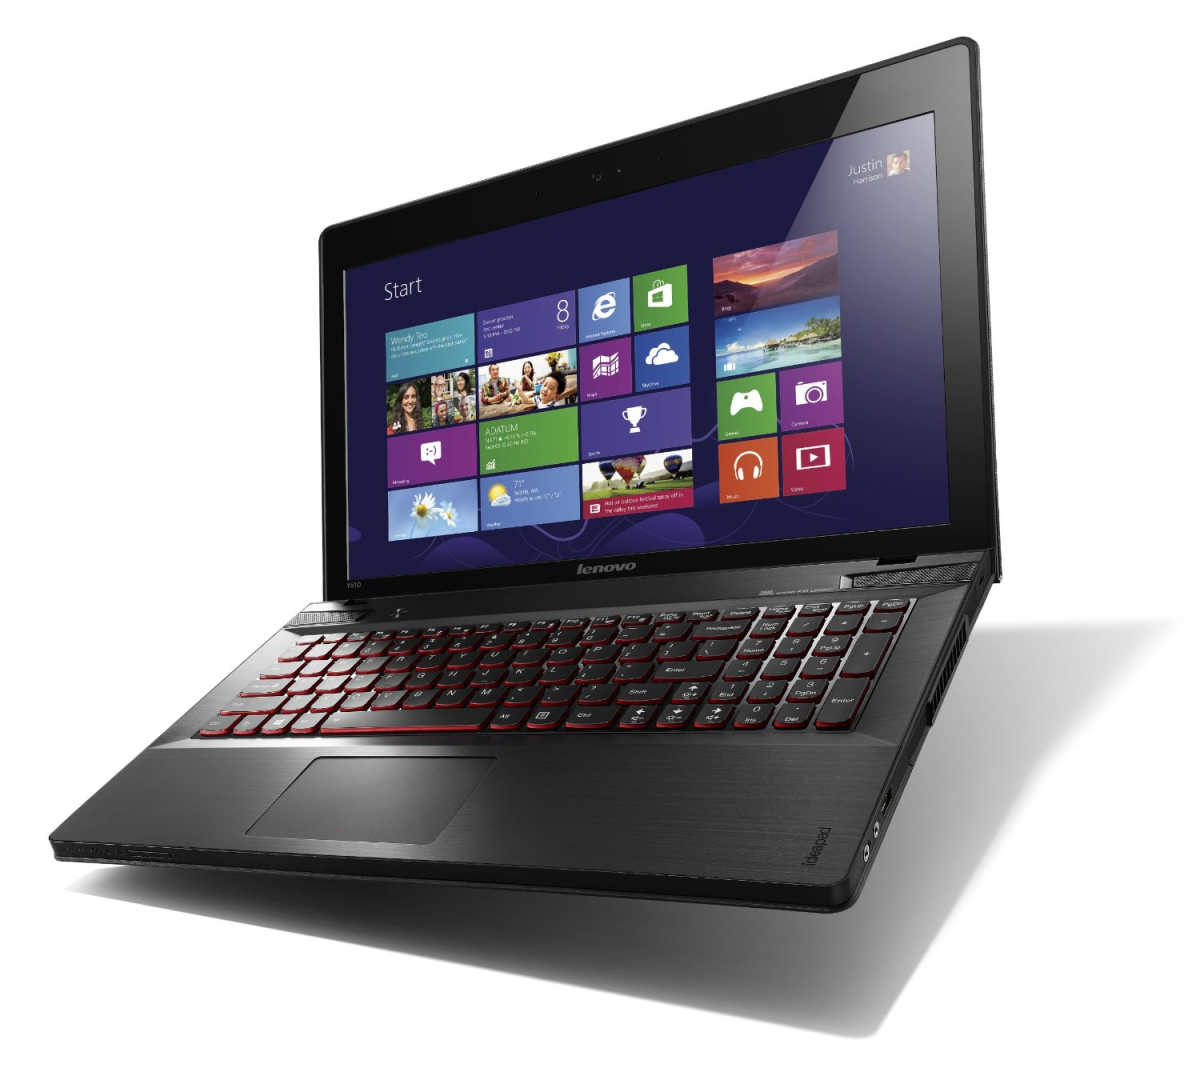 Lenovo makes powerful, relatively inexpensive laptops for daily tasks, gaming, video and graphics editing.